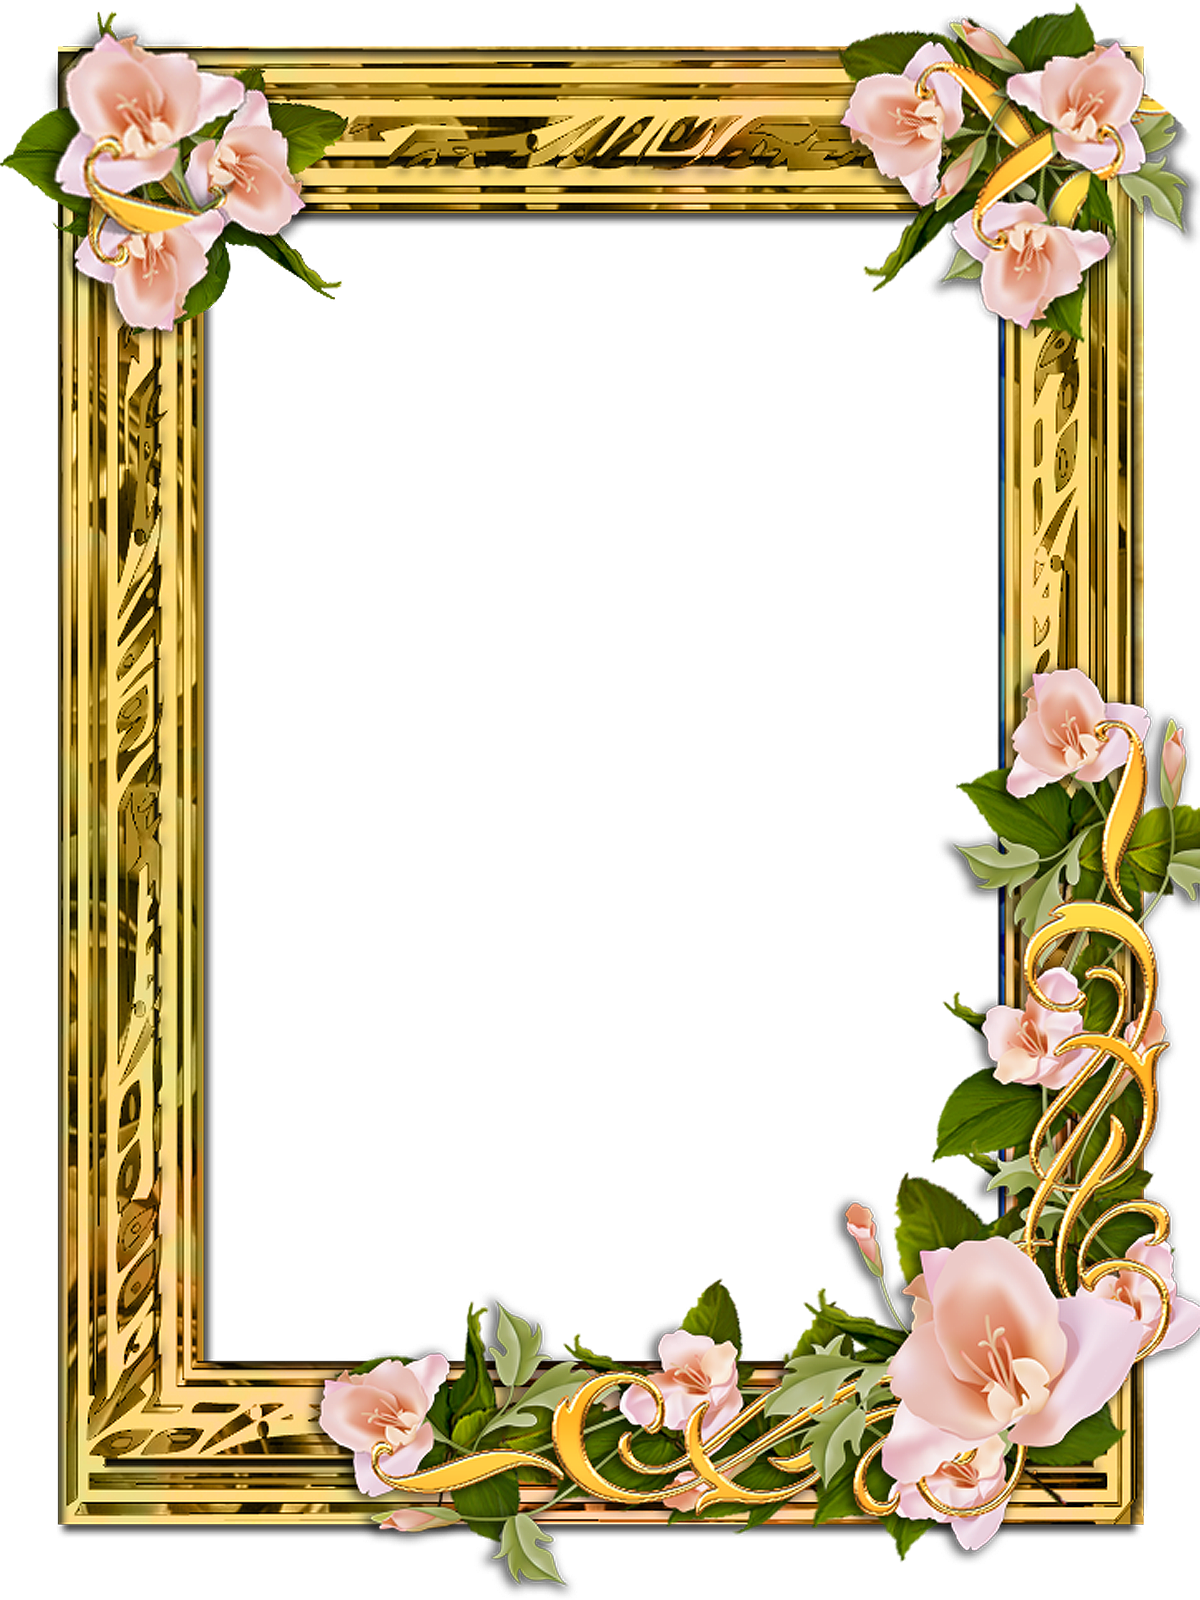 Png Gold Frame With Flowers On A Transparent Background 1200 X 1376 Flower Frame Png Flower Frame Free Photo Frames